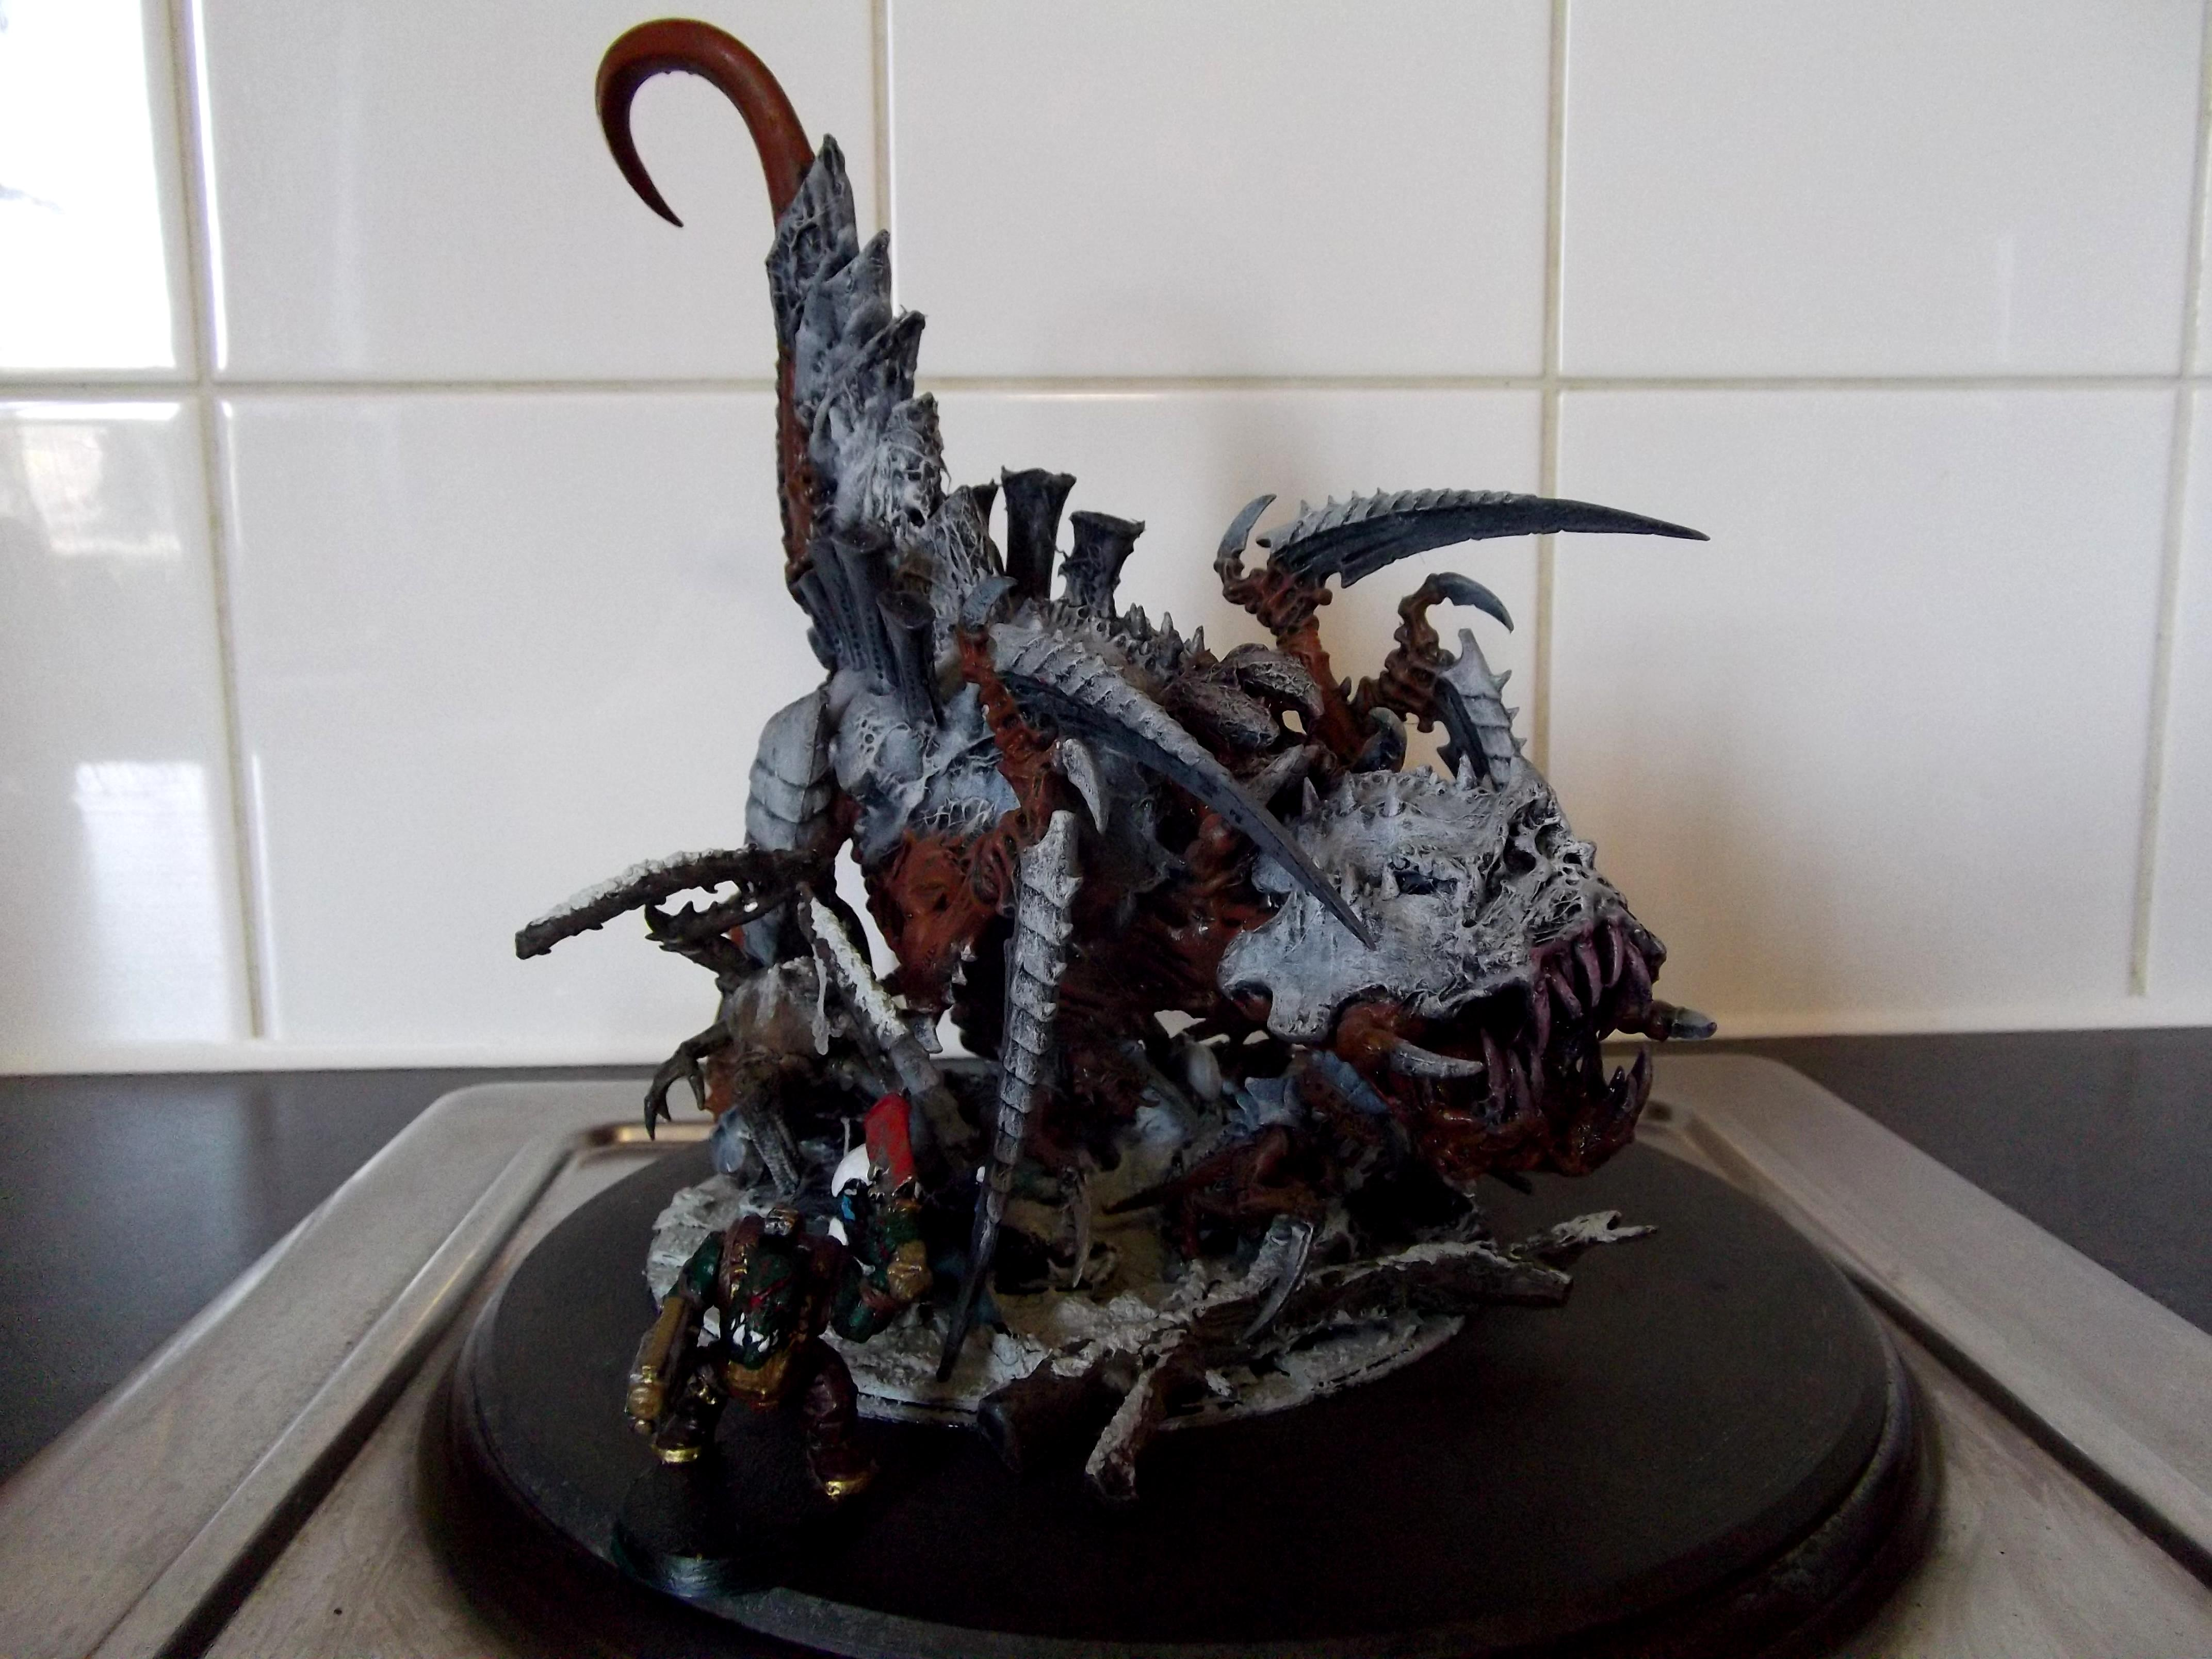 Action Pose, Conversion, Scenic, Scratch Build, Scythed Heirodule, Tyranids, Warhammer 40,000